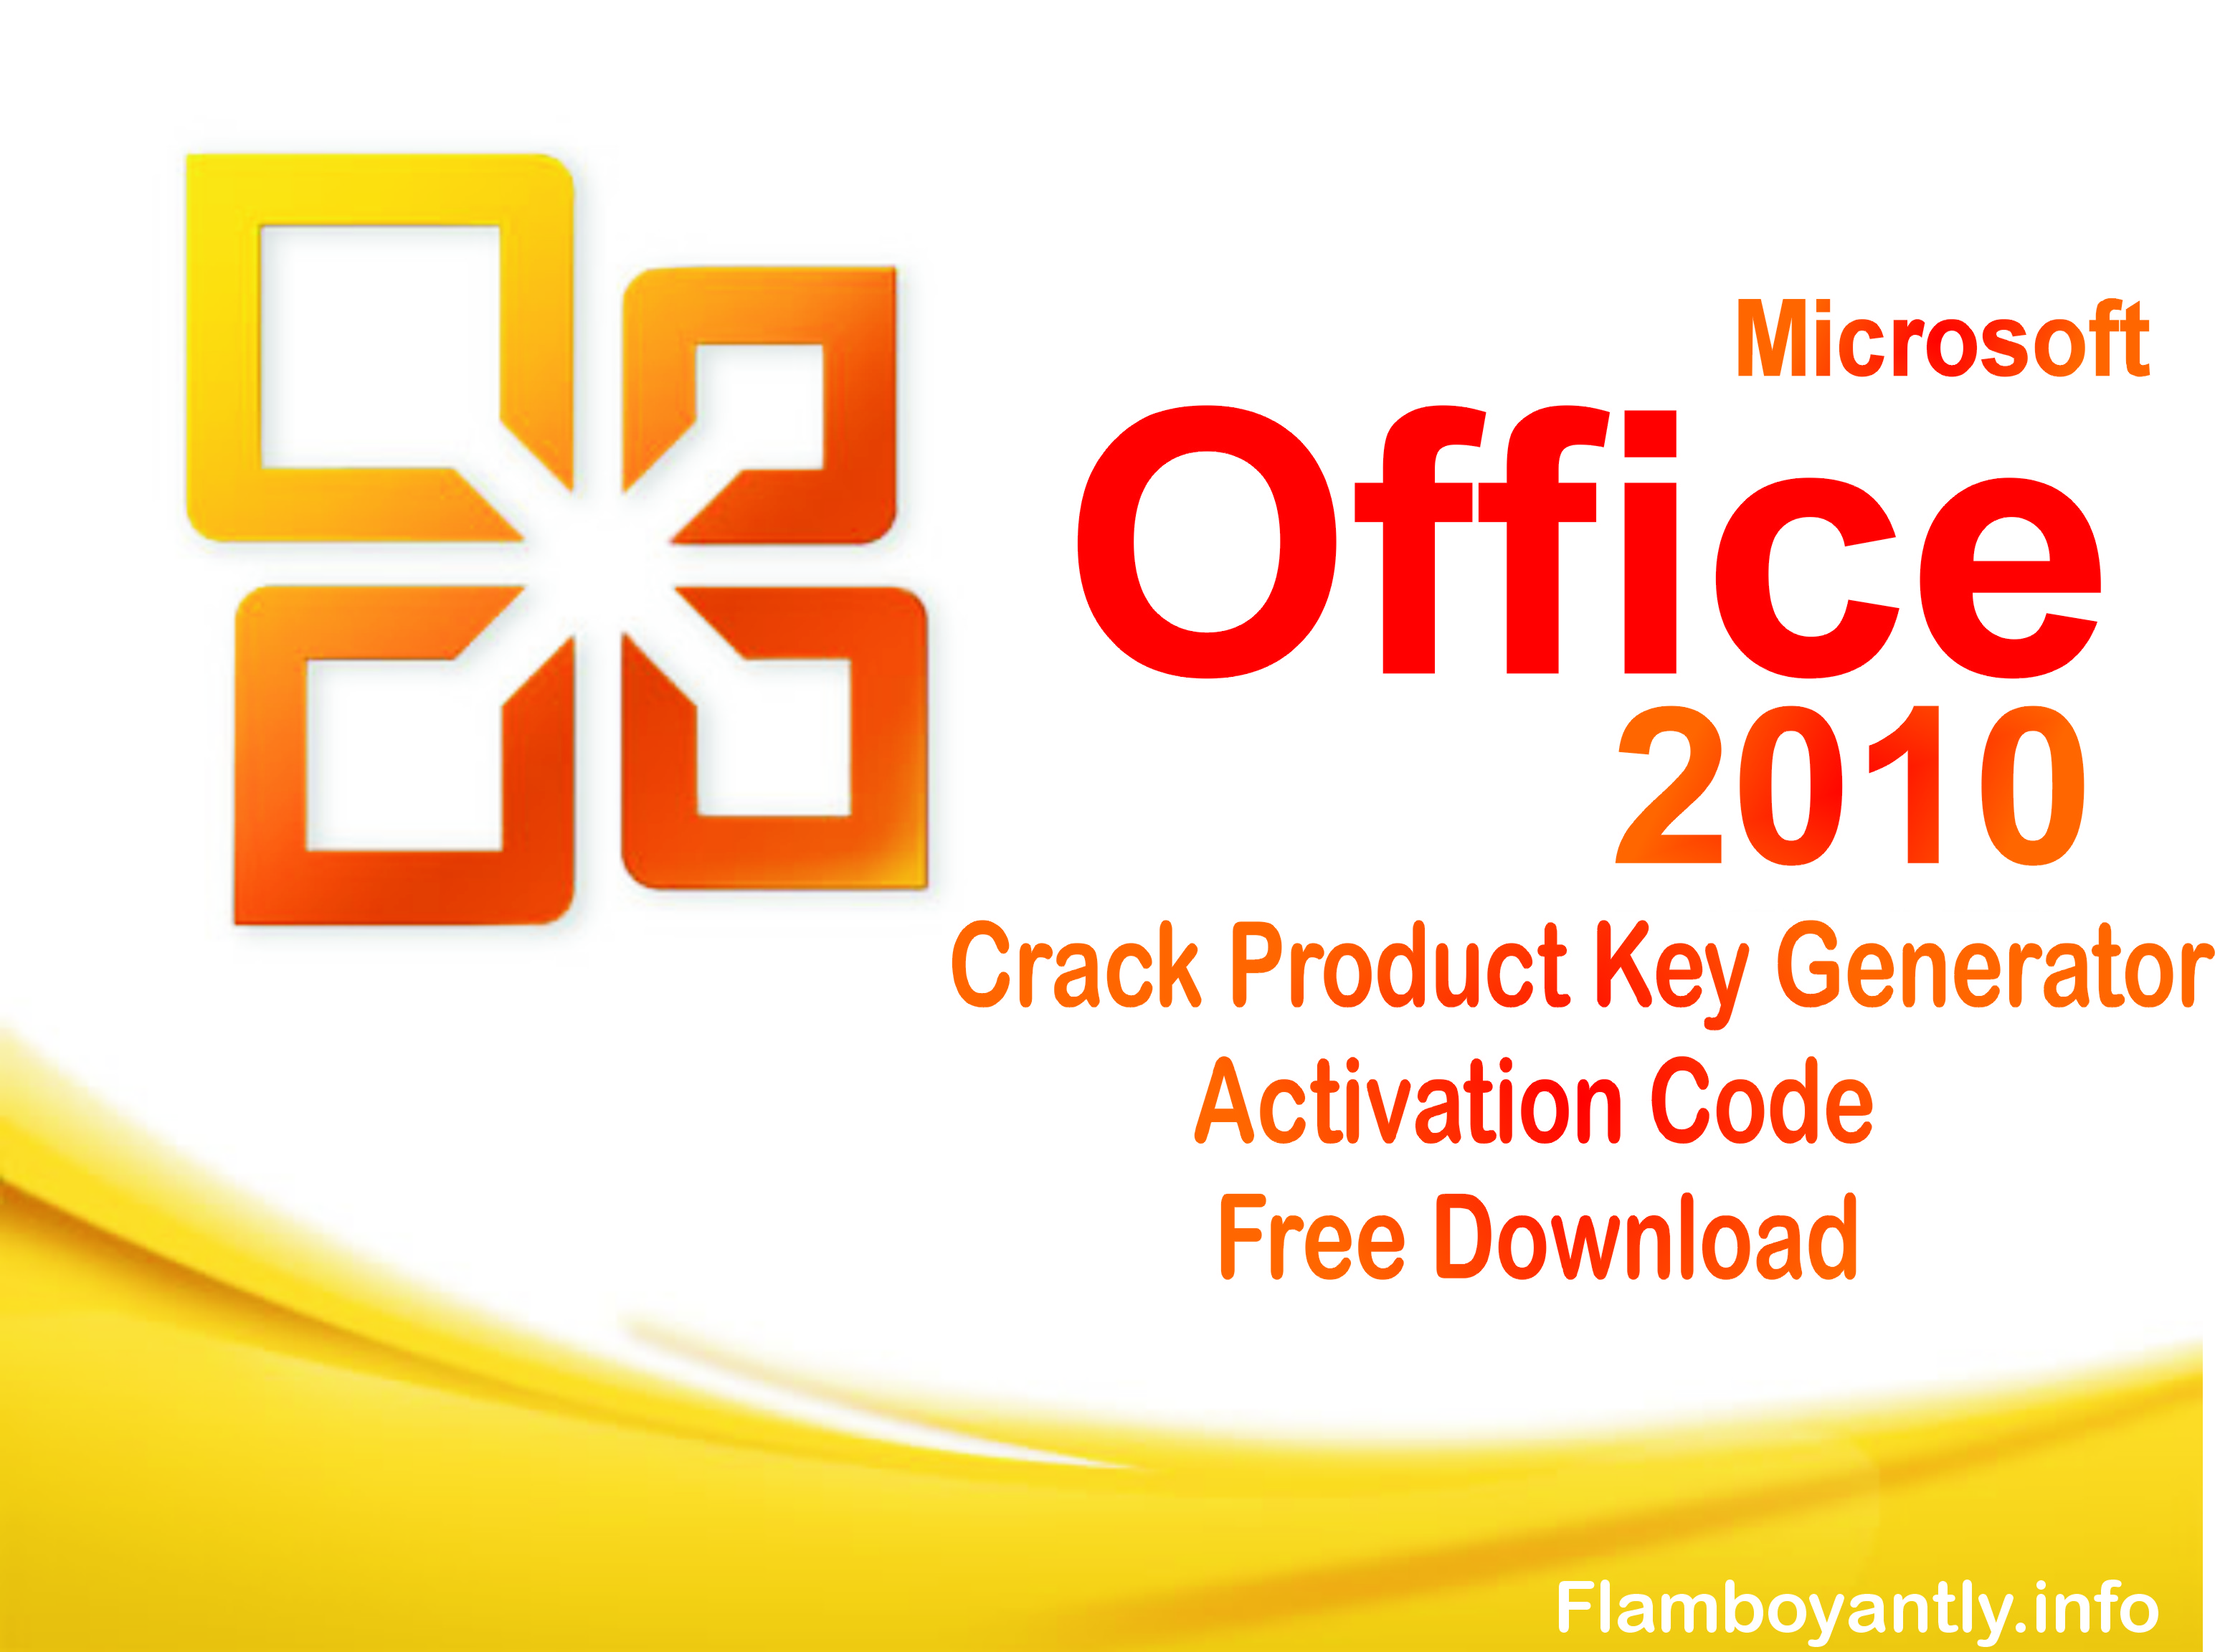 microsoft office 2010 activation crack free download